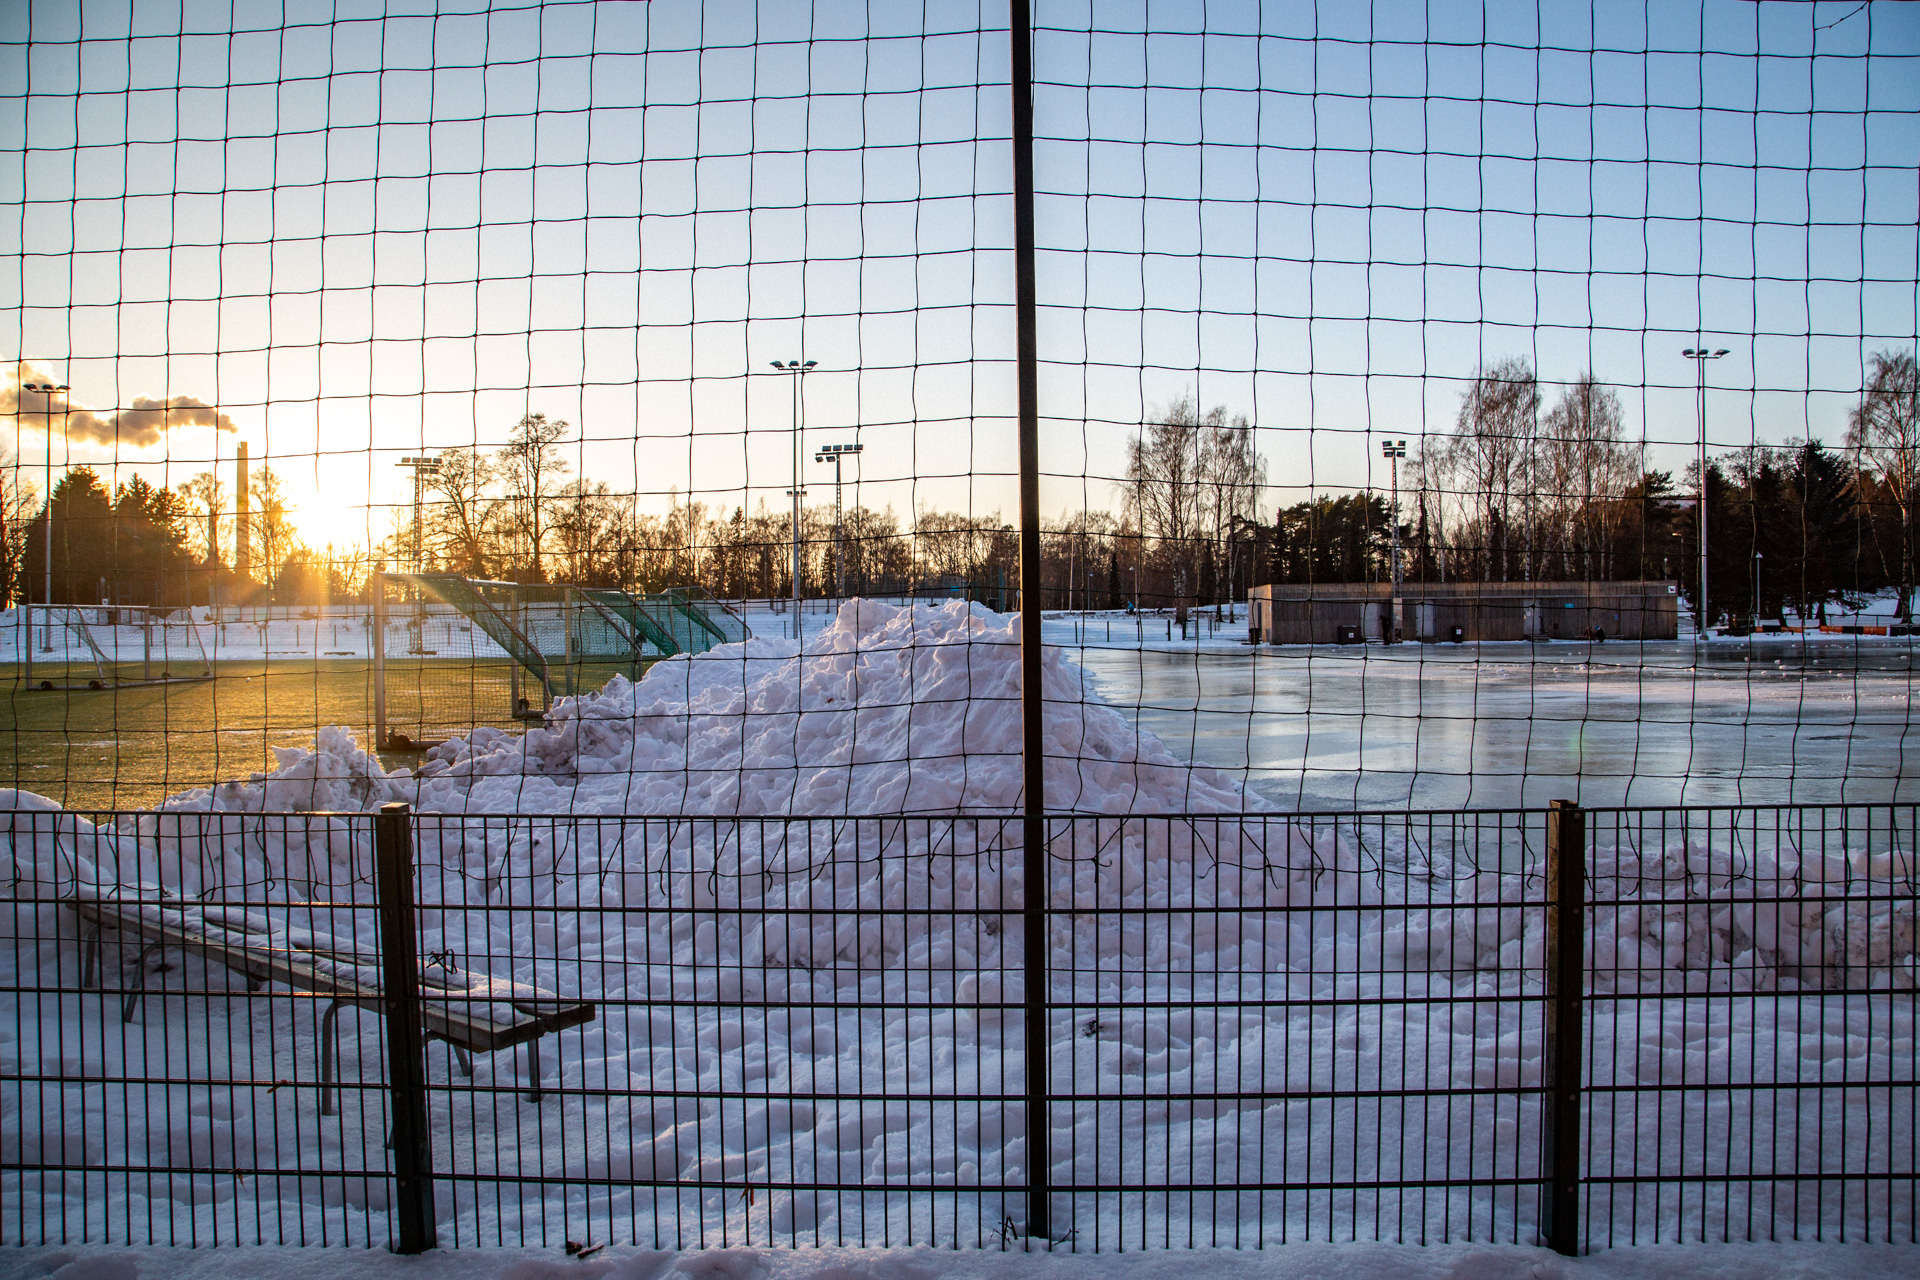 A view over a sports field that has a soccer field on the left and an ice skating area on the right.